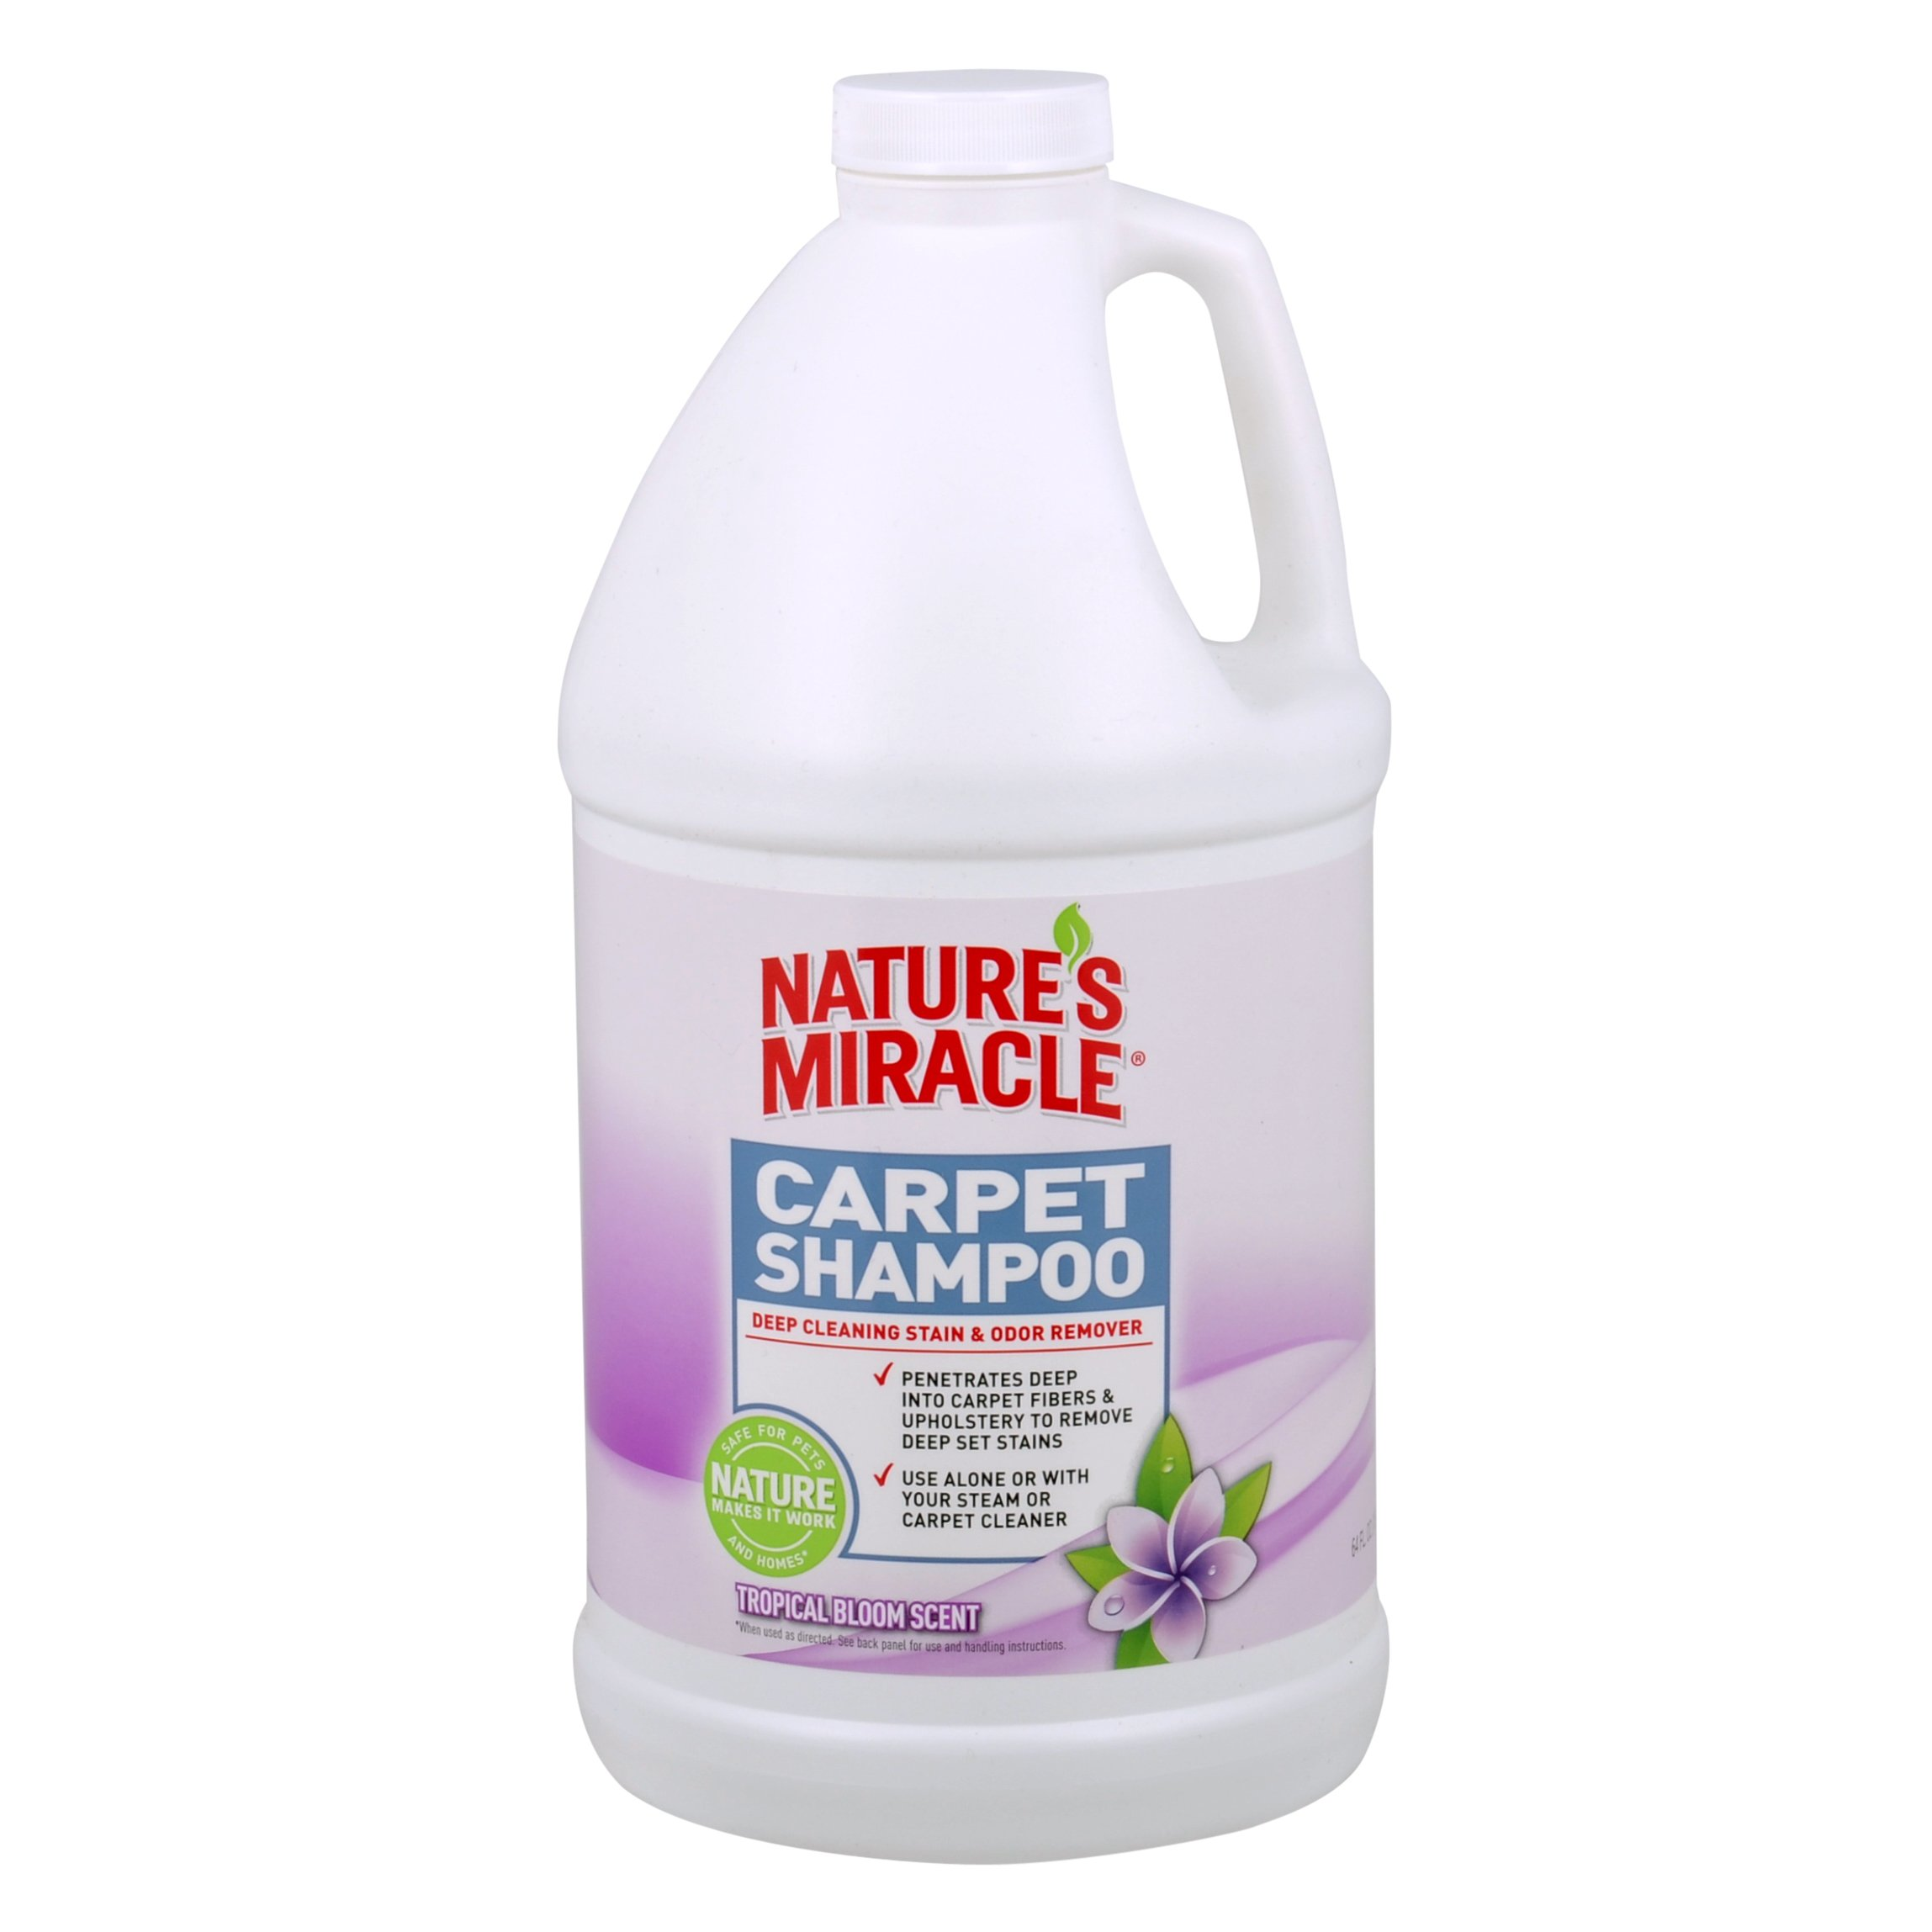 Nature's Miracle Tropical Bloom Scent Deep Cleaning Carpet Shampoo, Tropical Bloom, .5 gallon by Nature's Miracle